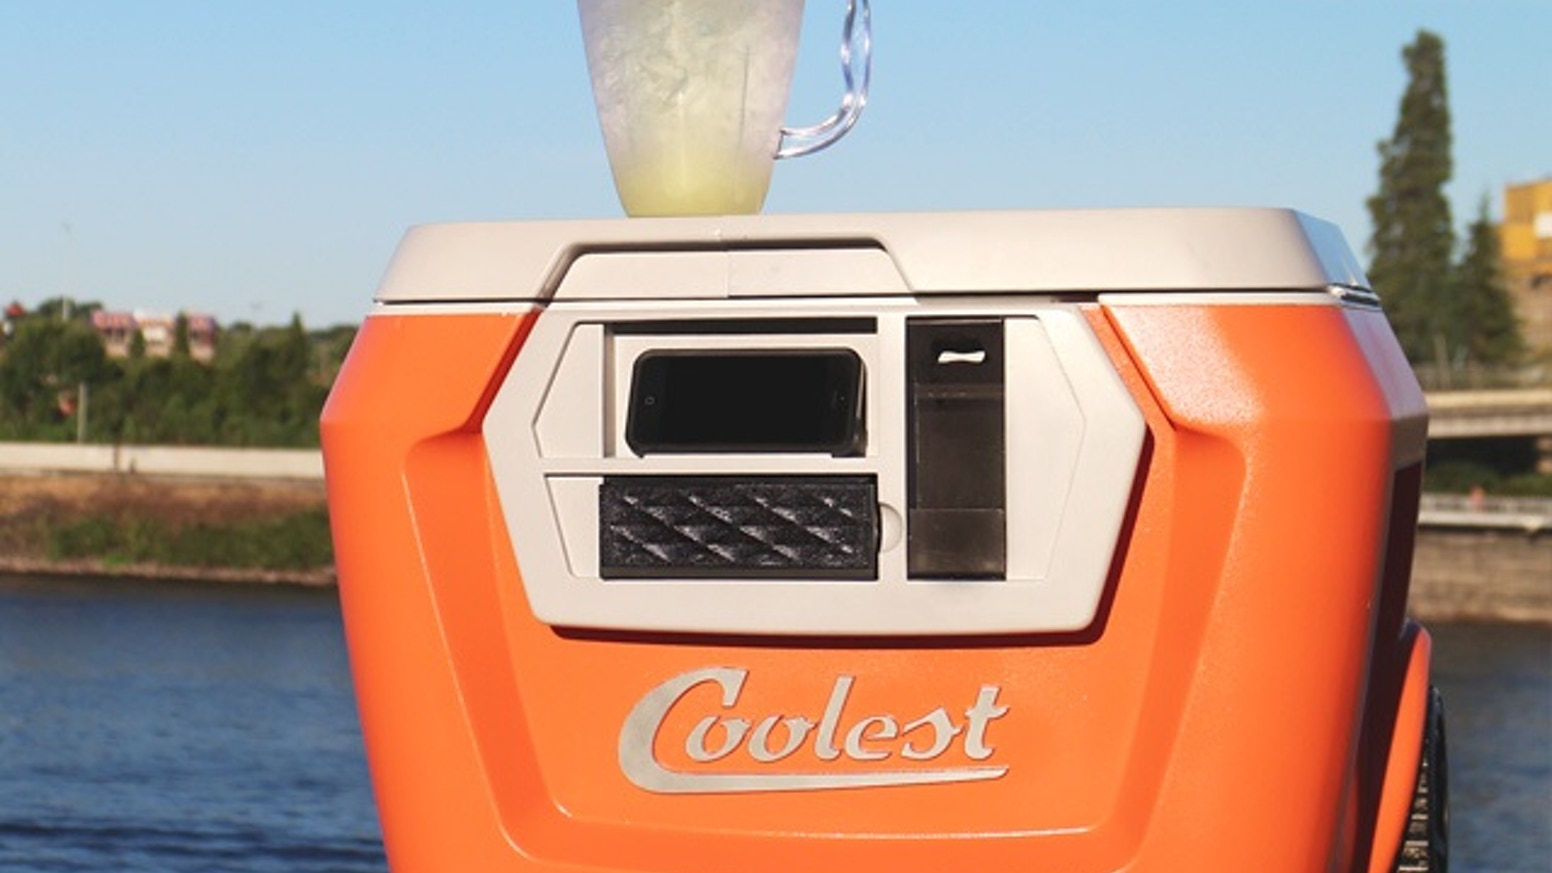 Coolest Cooler is shutting down after a disastrous five-year run that leaves many backers empty-handed